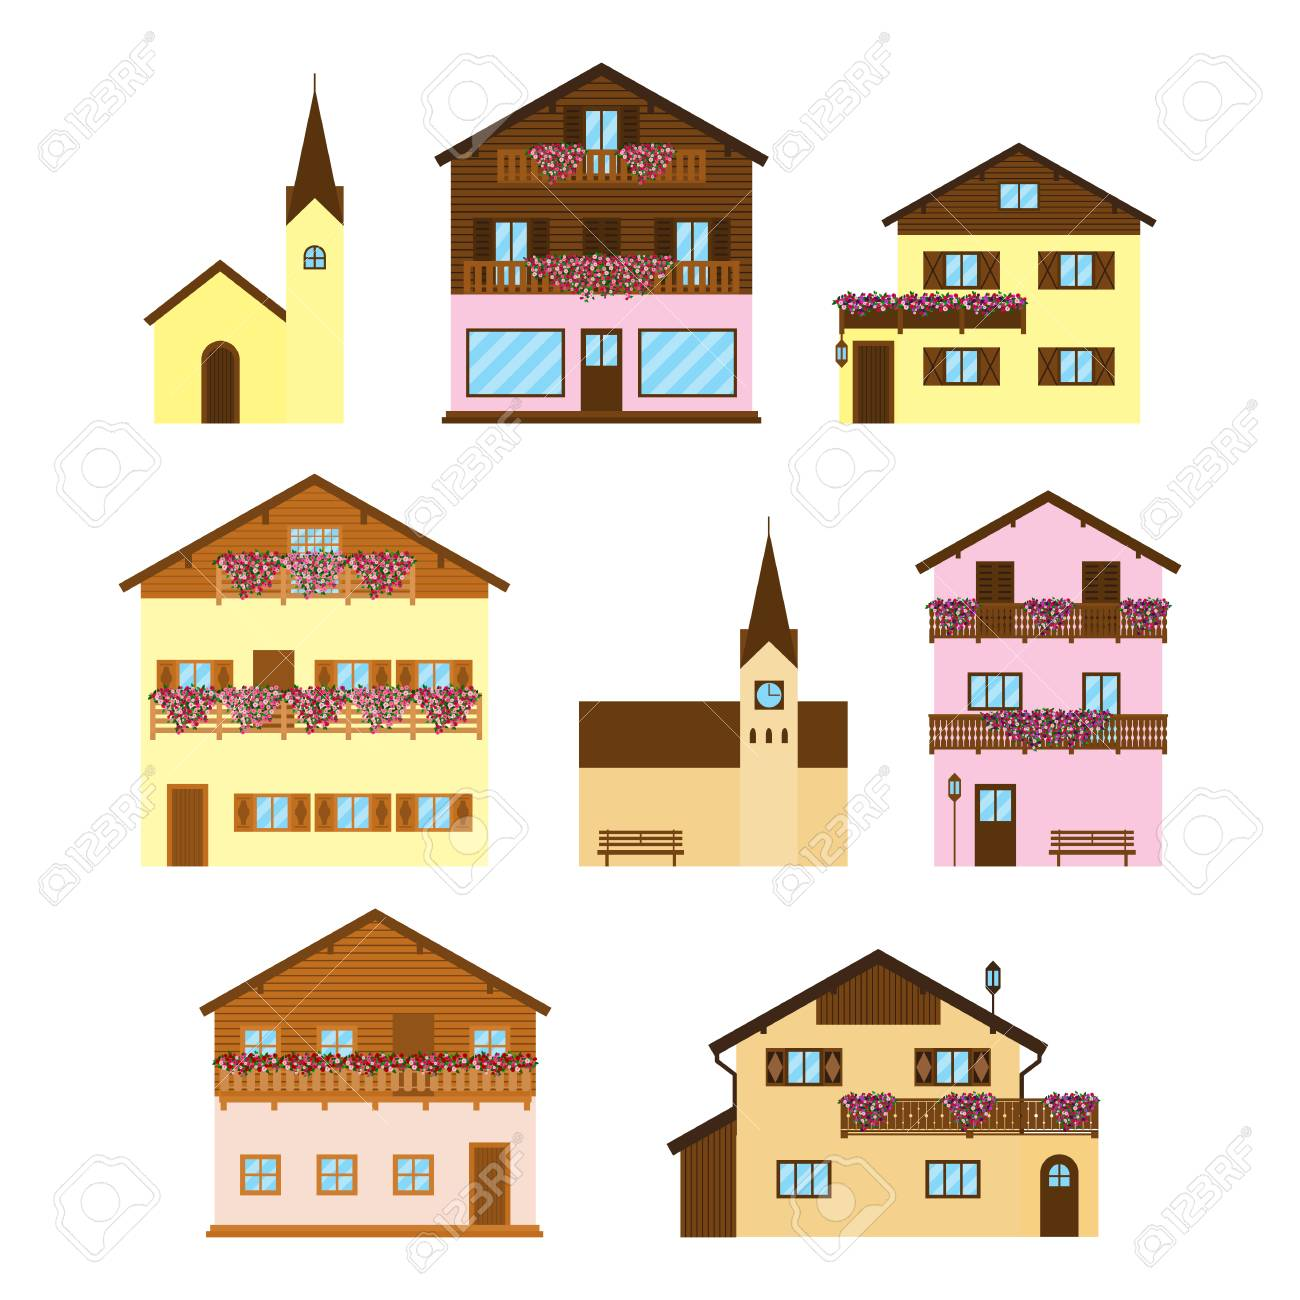 Set Of Alpine Wooden Houses Chalets Hotels And Churches In Flat Style Isolated On